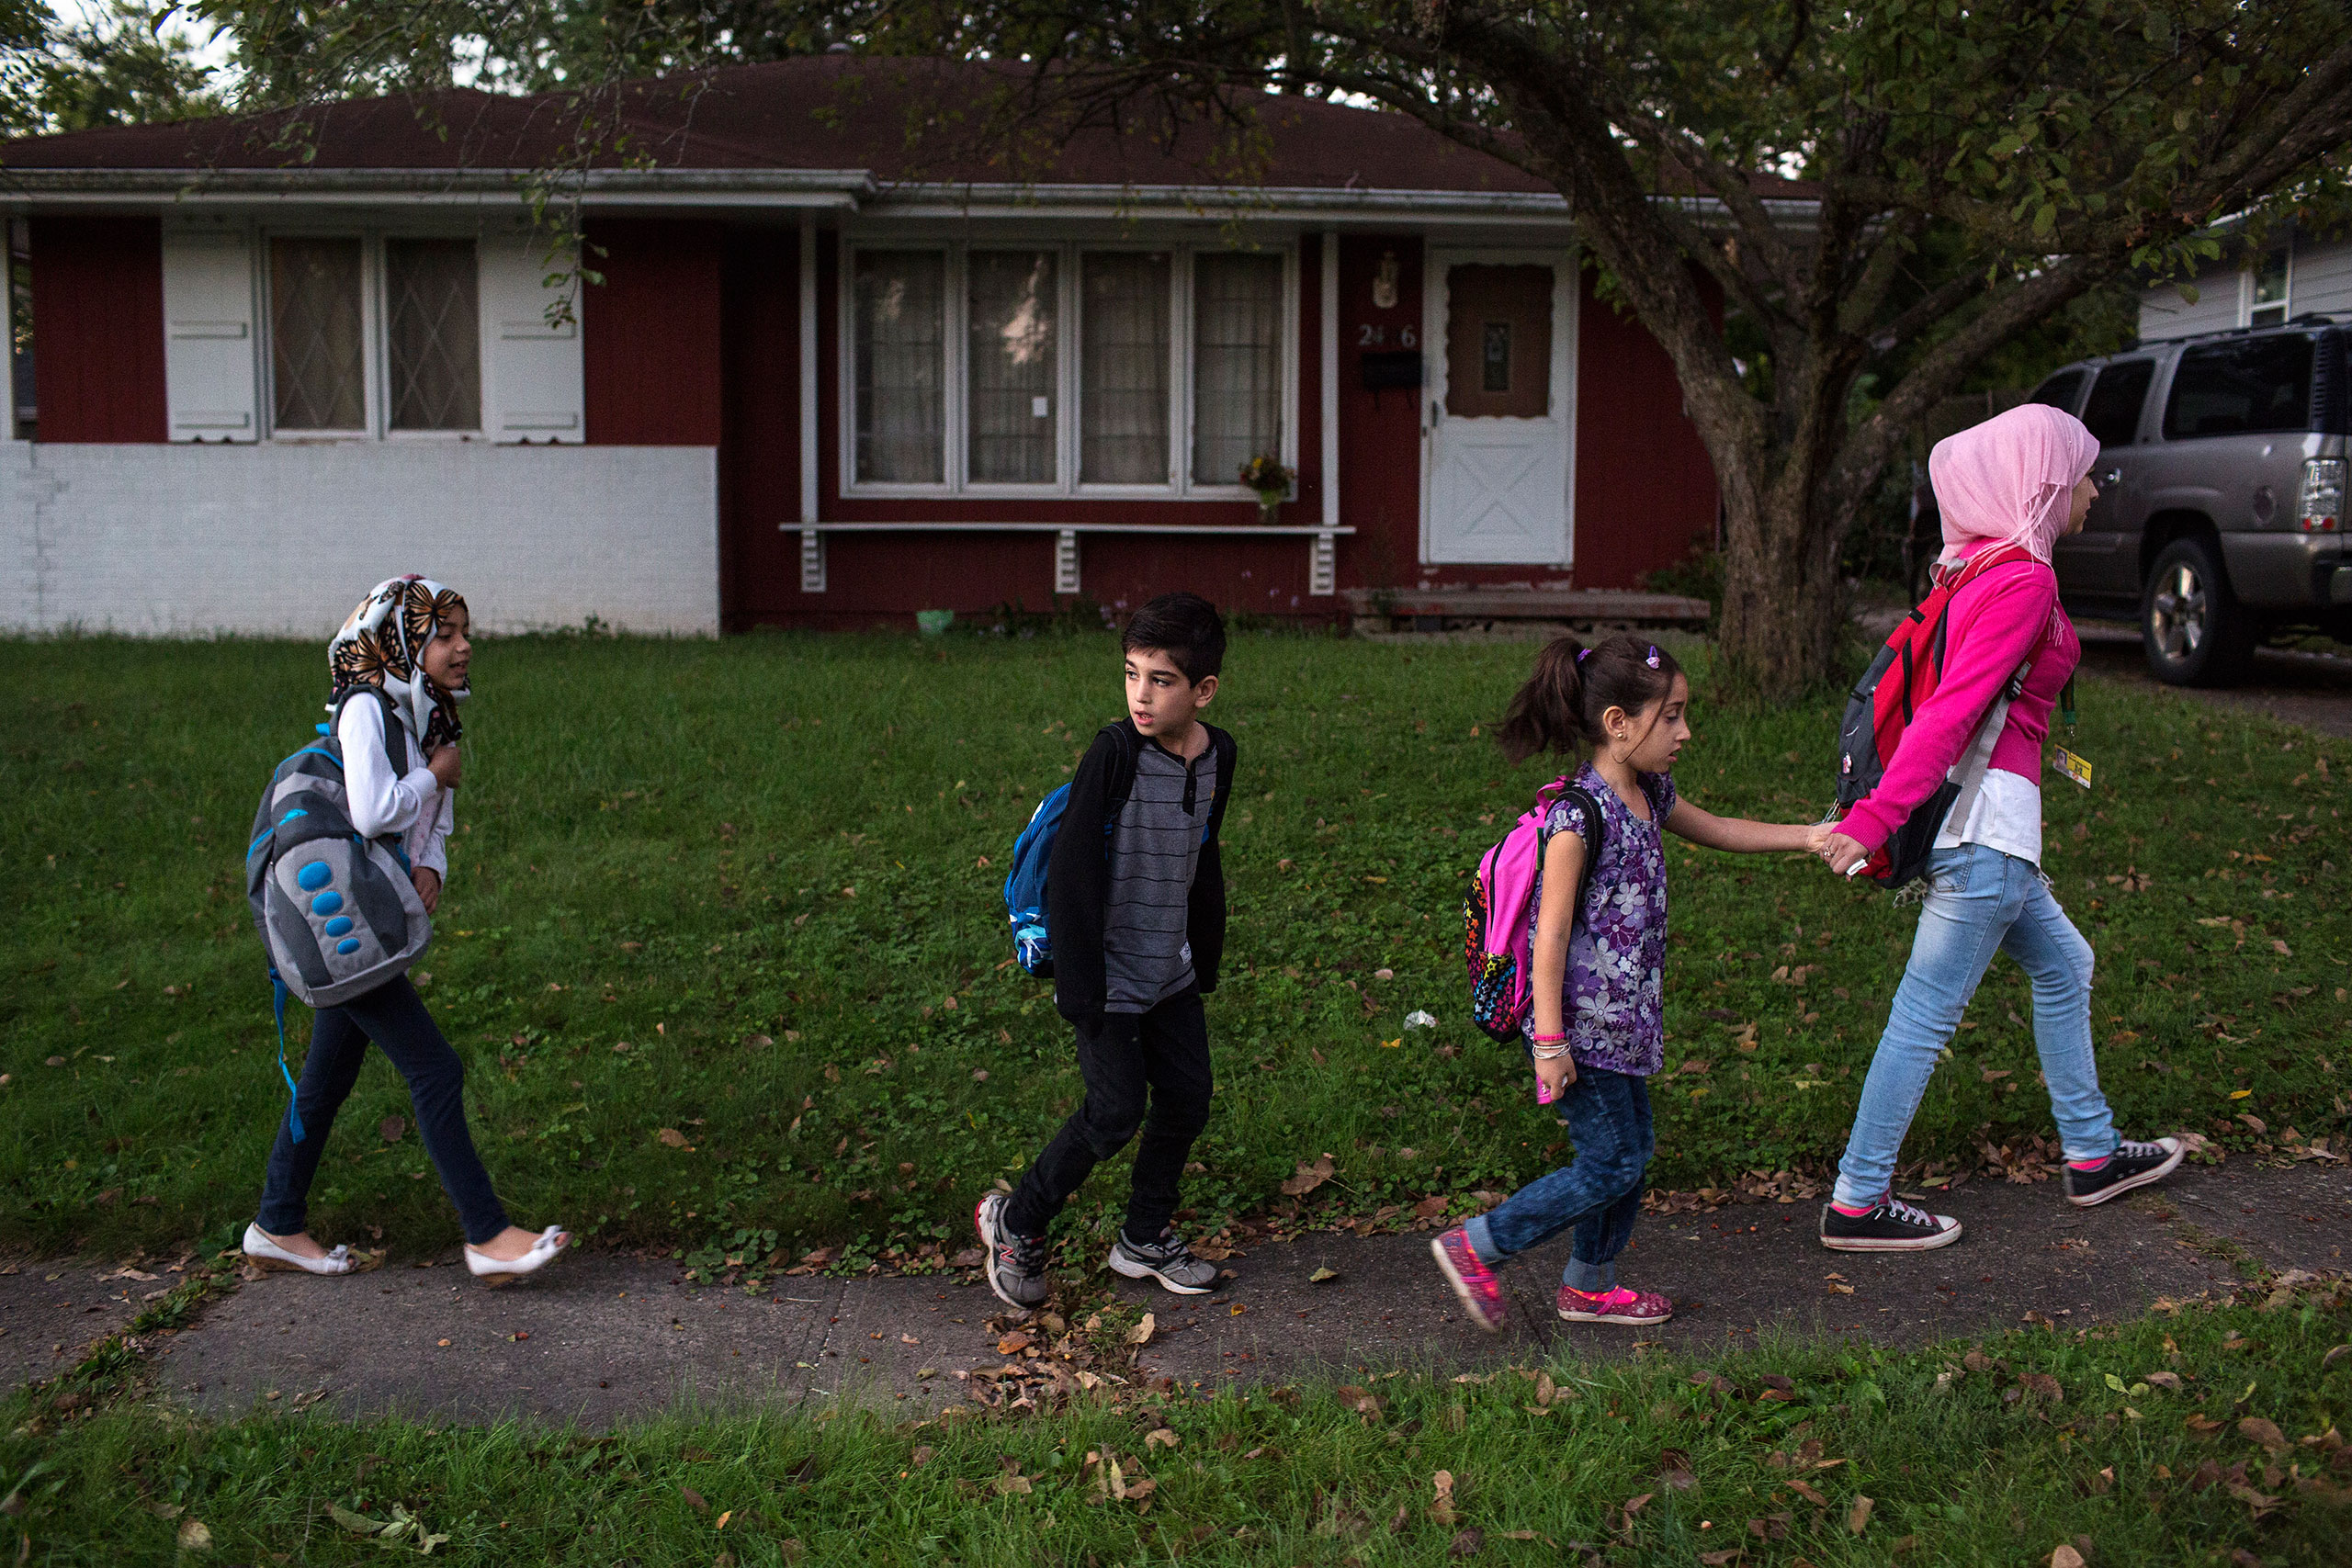 Sedra walks her brother Mutaz, sister Hala (with pink backpack) and a friend to their school-bus stop in the family's neighborhood in Des Moines, Sept. 19, 2016.From  A Syrian Family Finds a New Home in Iowa